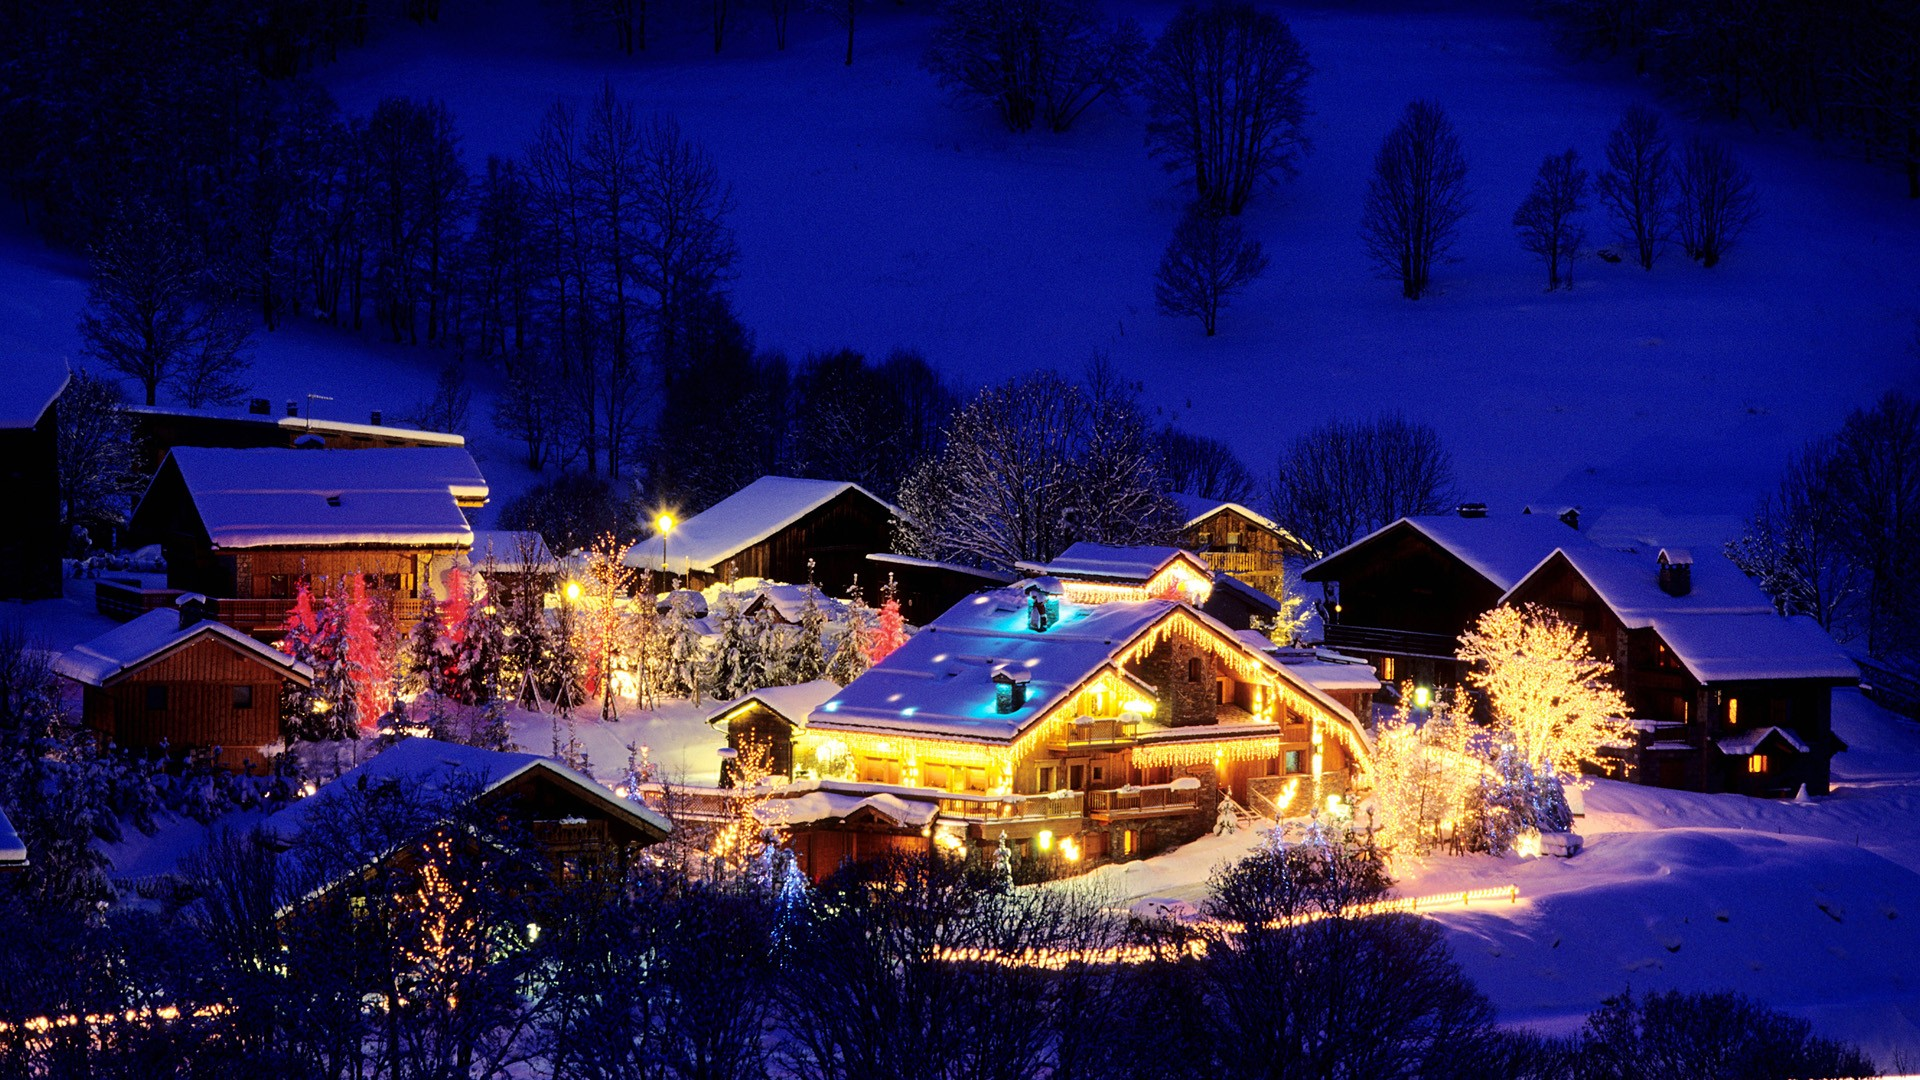 pixels full hd wallpapers collection hd 1920x1080 christmas wallpapers 1920x1080